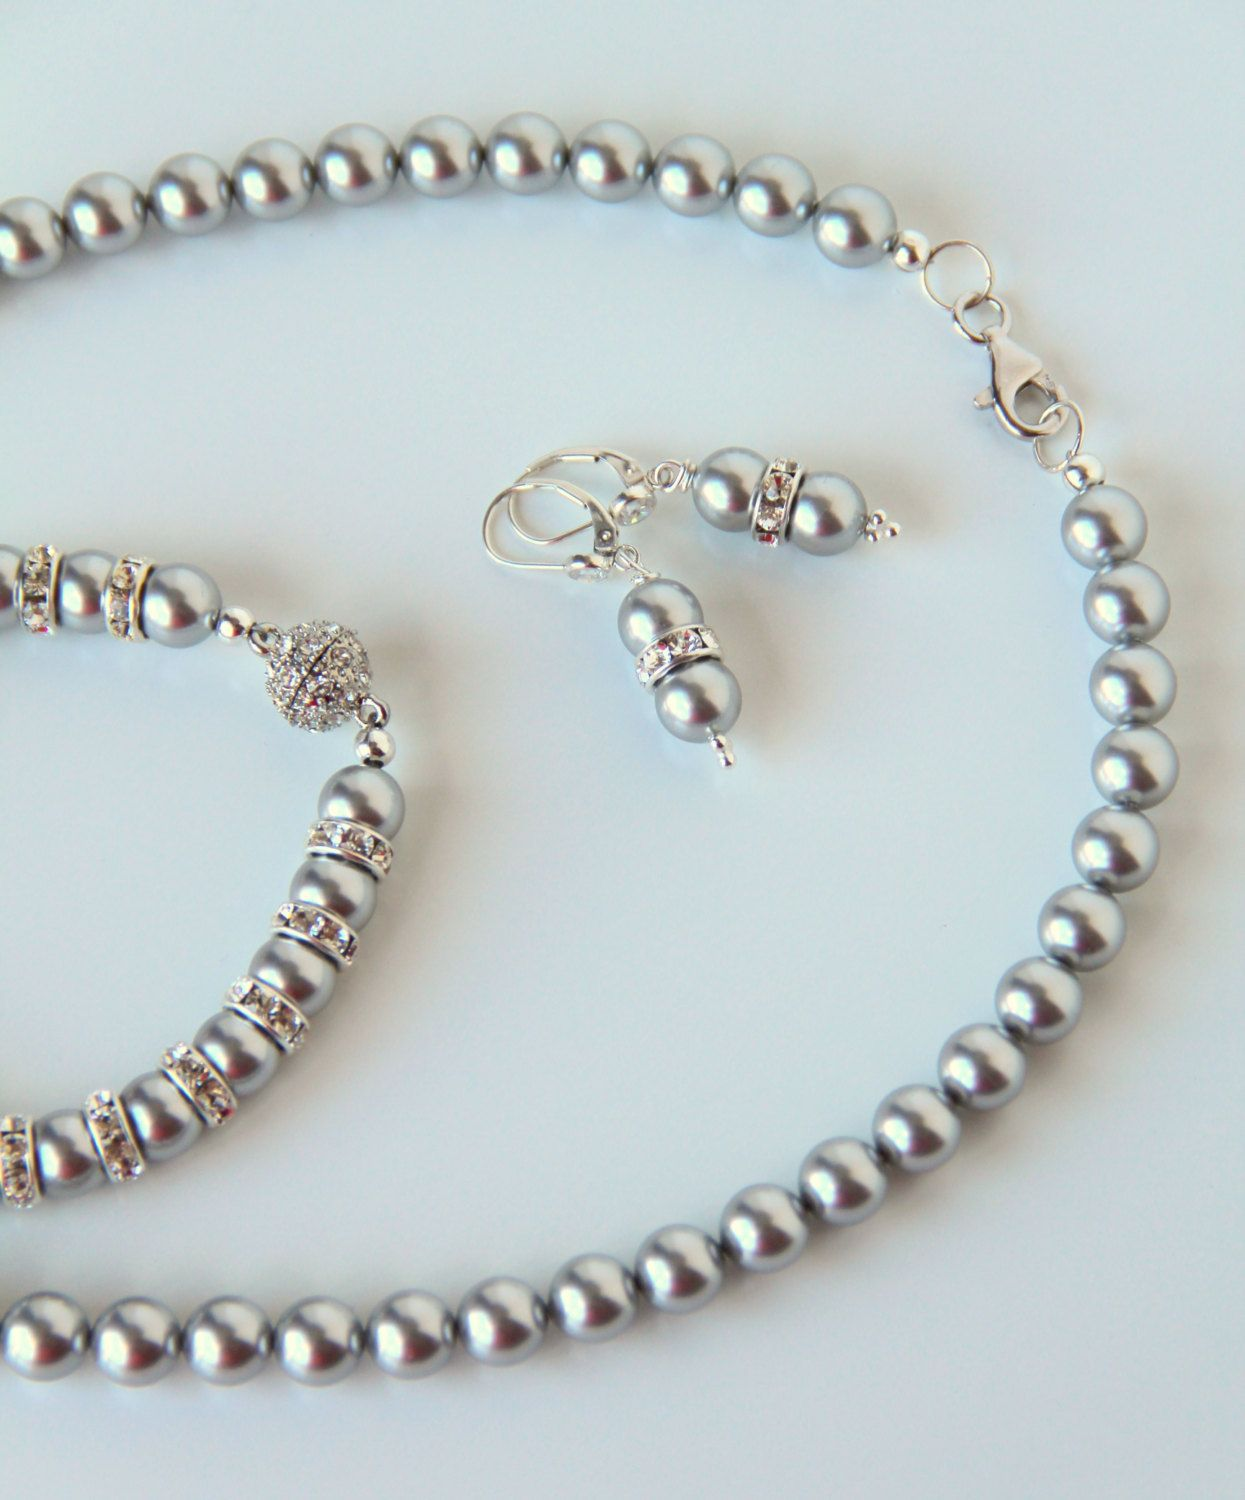 Sterling Silver Pendant Necklace Made with Cream Crystal Pearls from Swarovski o3nnNCiVv